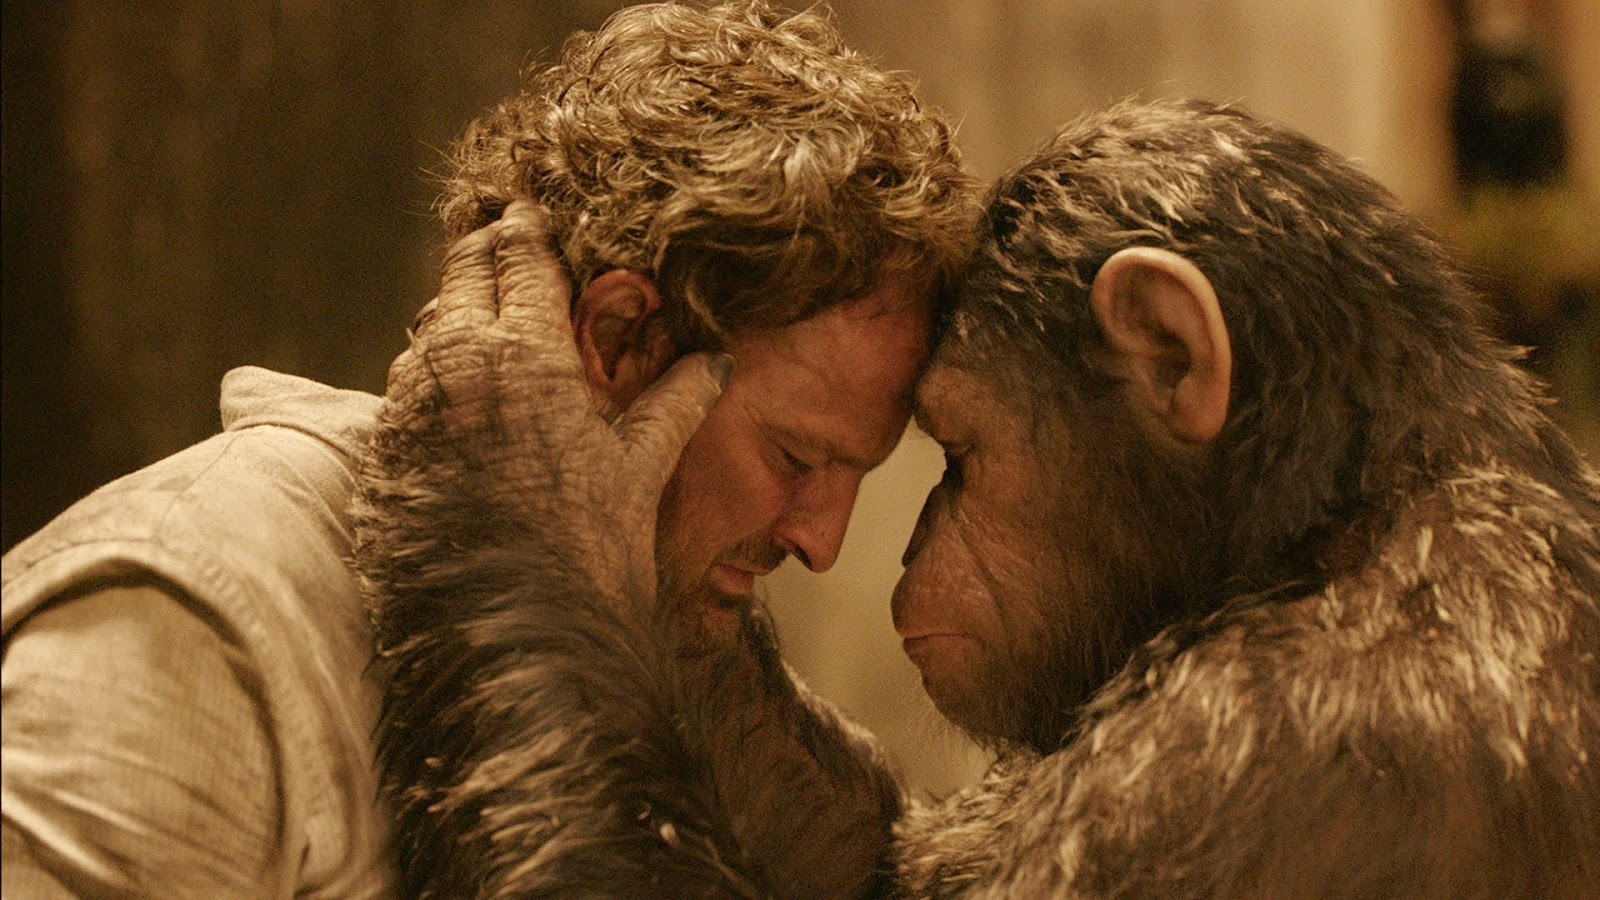 2014-dawn of the planet of the apes